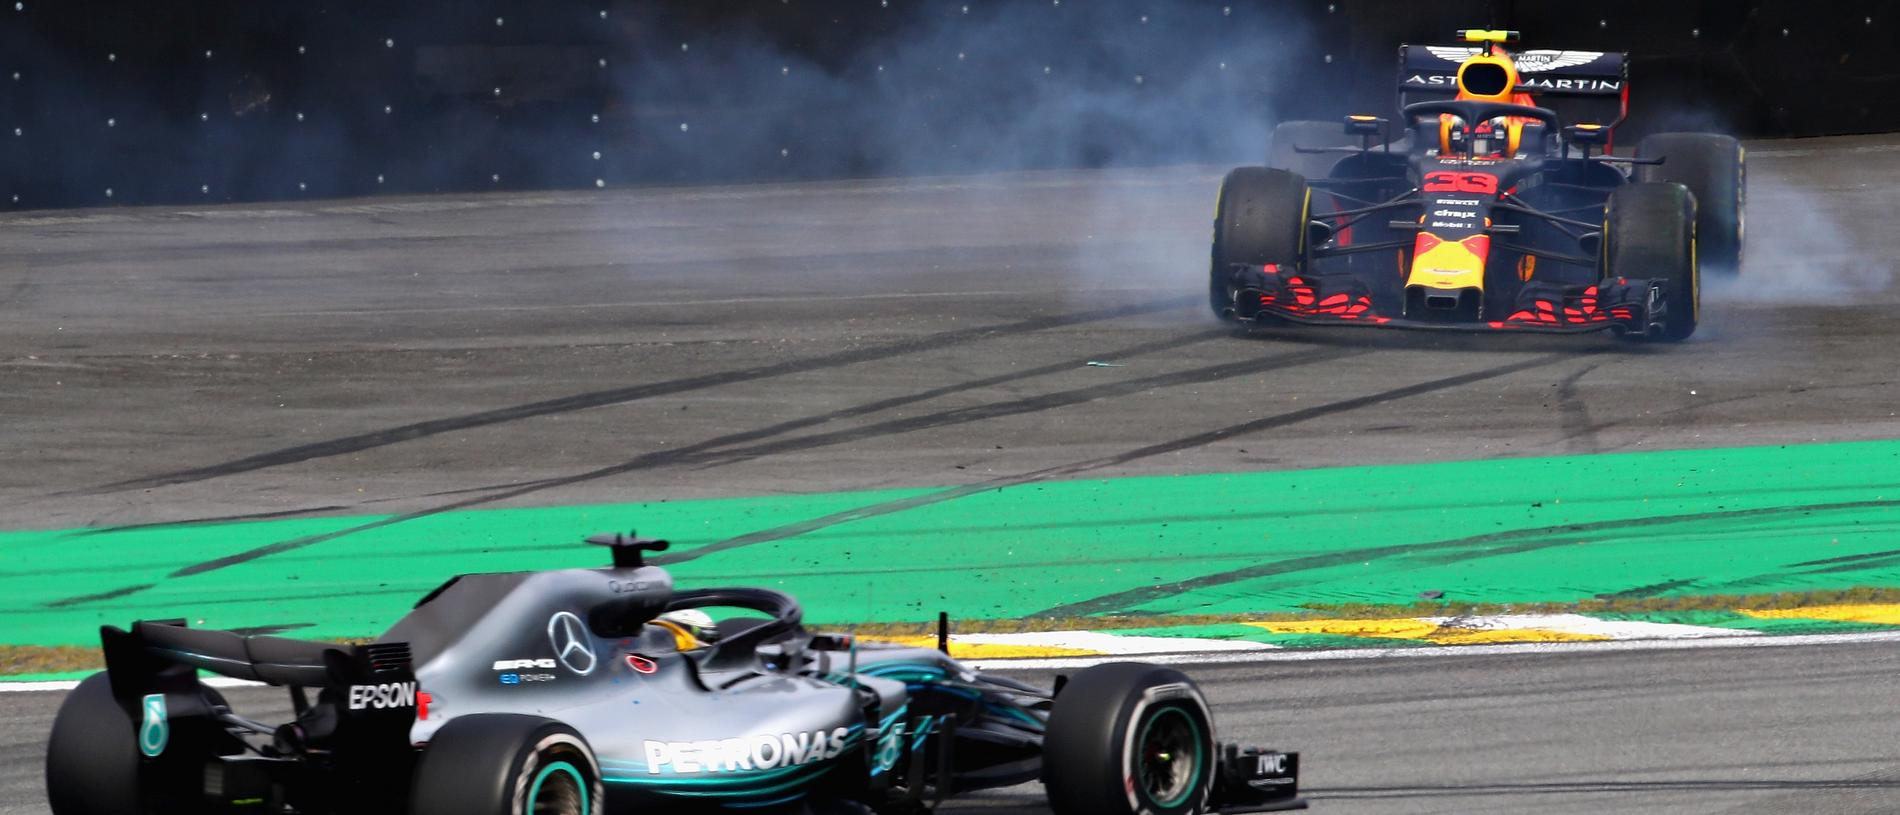 SAO PAULO, BRAZIL - NOVEMBER 11: Lewis Hamilton of Great Britain driving the (44) Mercedes AMG Petronas F1 Team Mercedes WO9 passes as Max Verstappen of the Netherlands driving the (33) Aston Martin Red Bull Racing RB14 TAG Heuer spins after crashing during the Formula One Grand Prix of Brazil at Autodromo Jose Carlos Pace on November 11, 2018 in Sao Paulo, Brazil. (Photo by Mark Thompson/Getty Images)